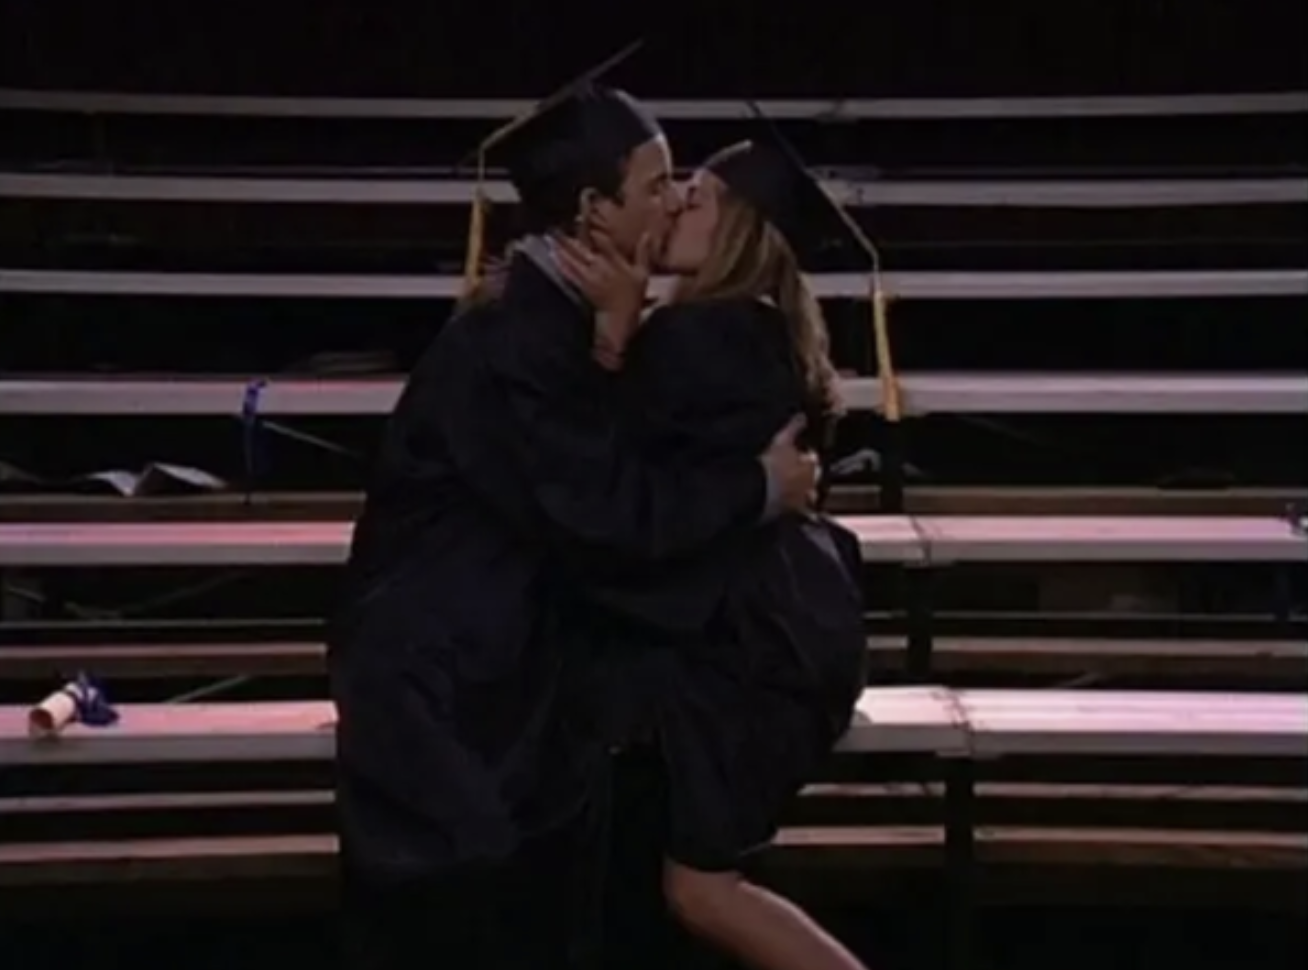 Topanga and Cory kissing in their graduation cap and gown